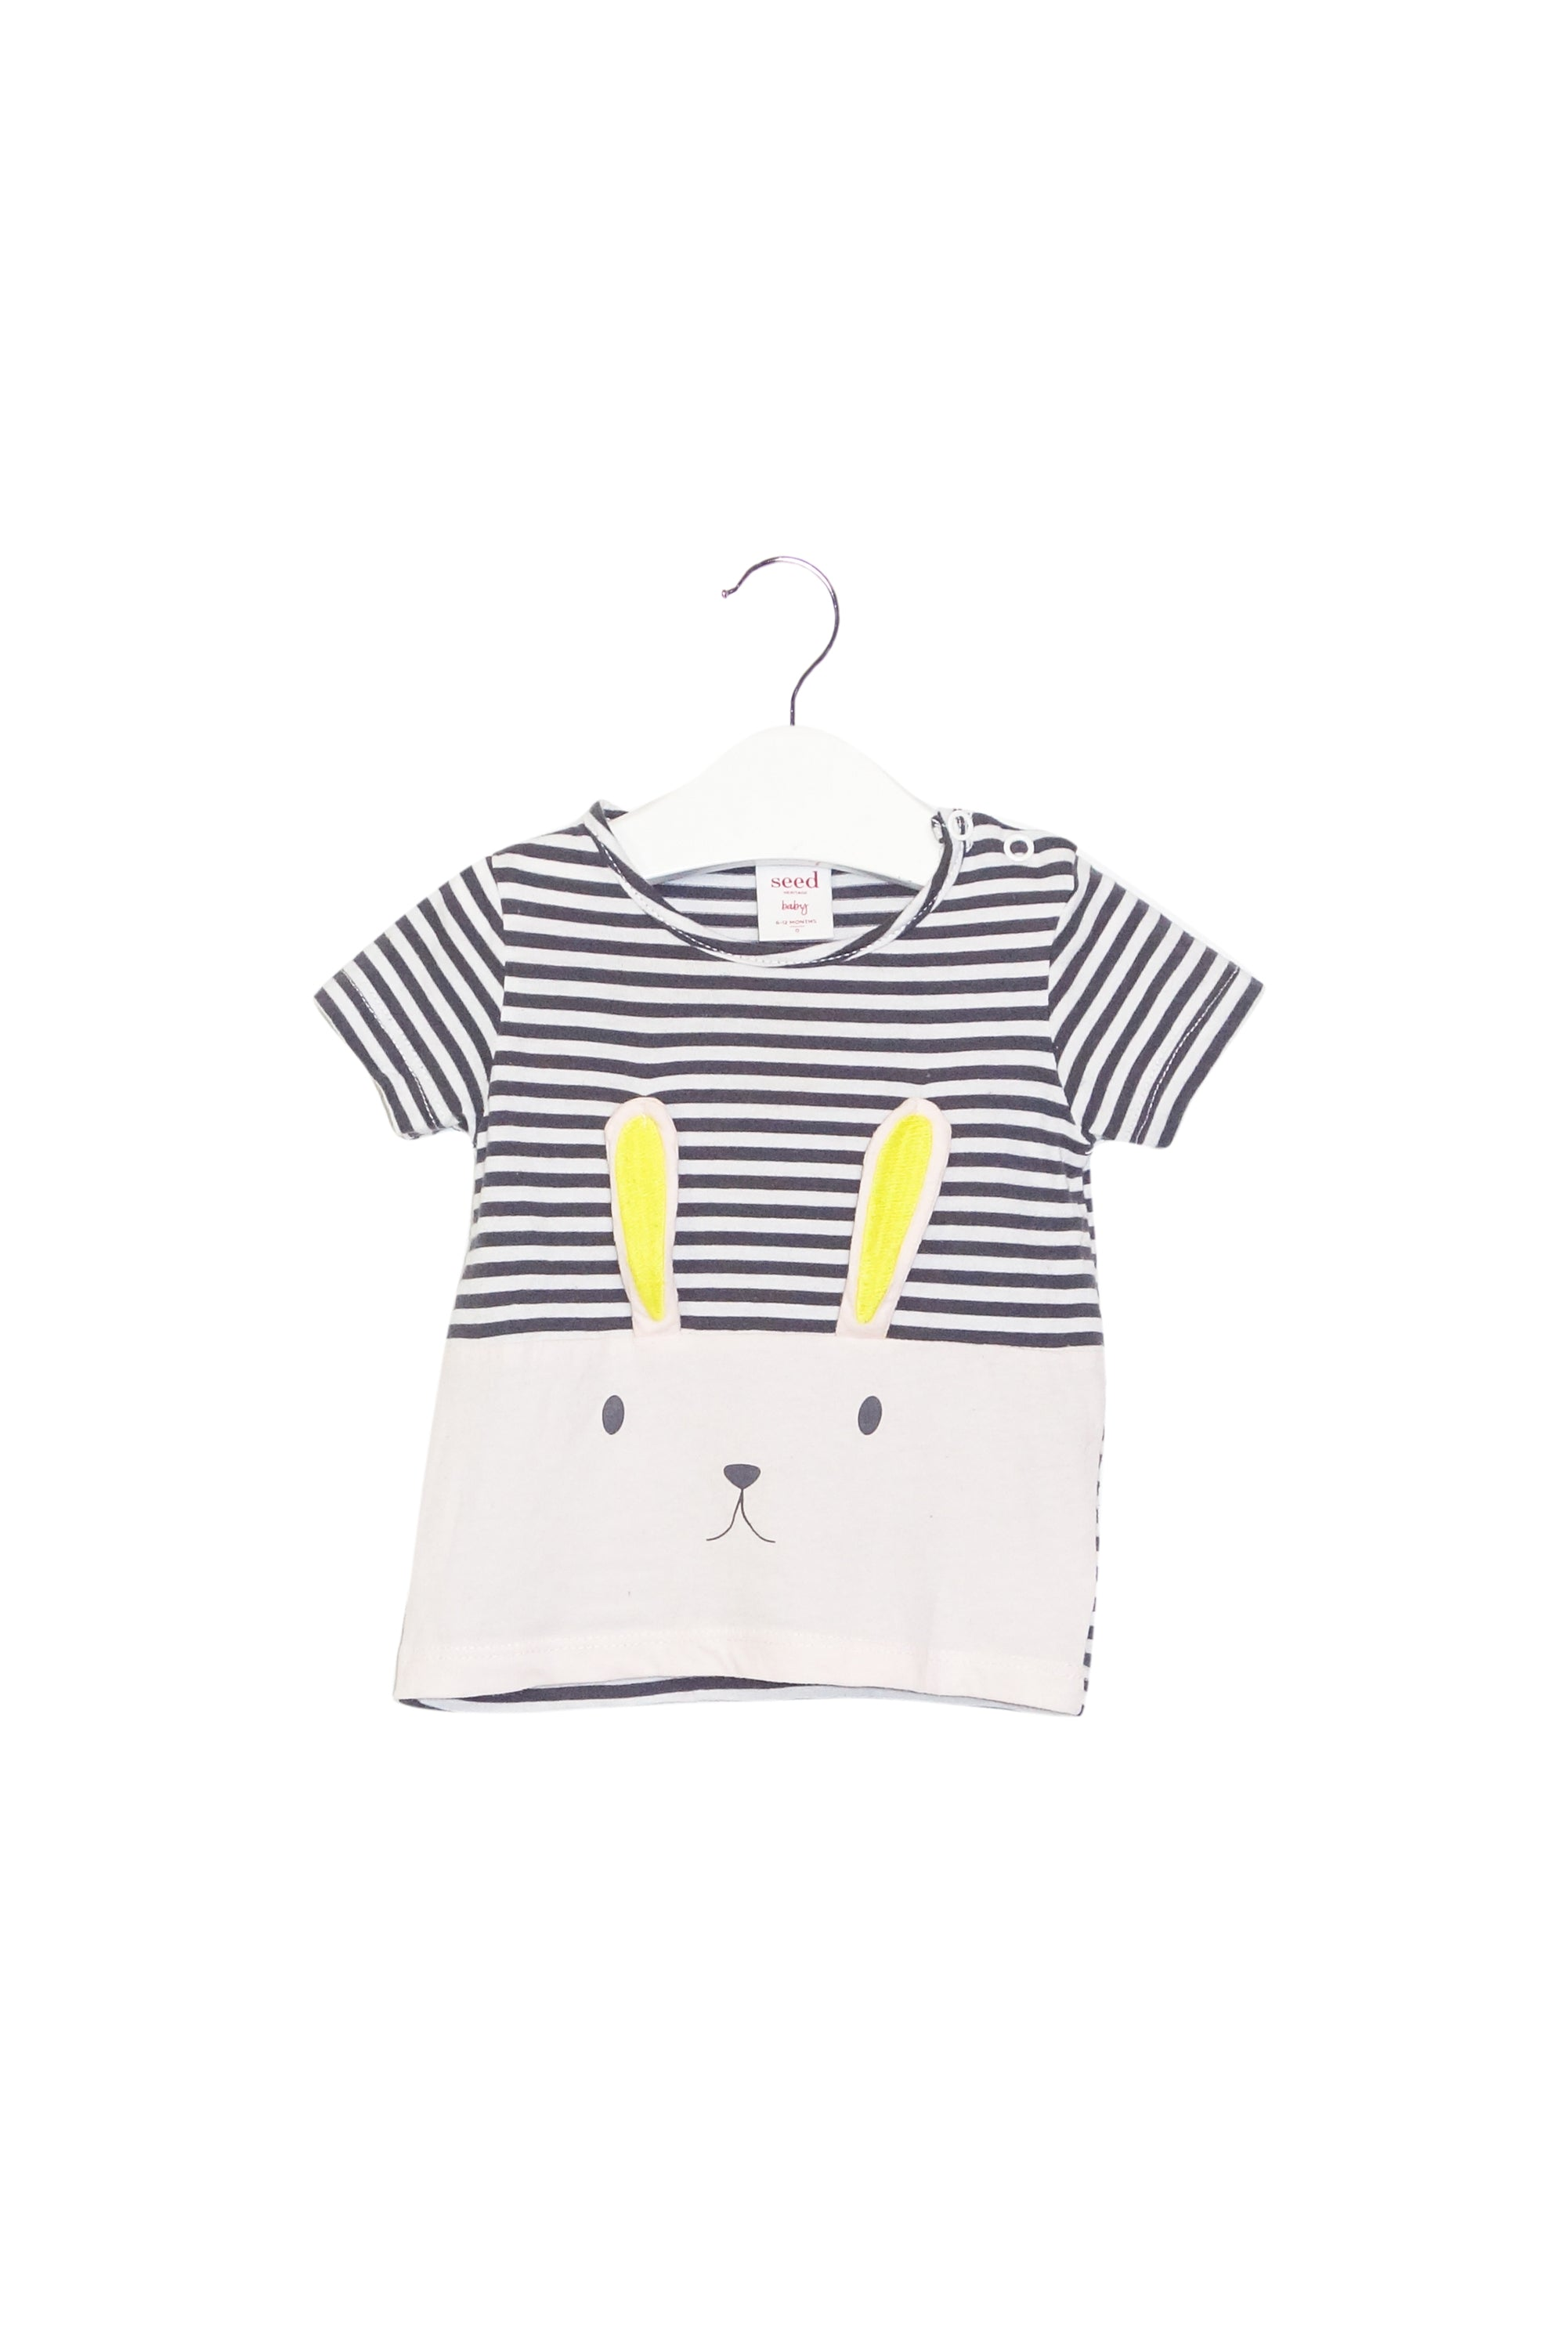 10016249 Seed Baby ~T-shirt 6-12M at Retykle